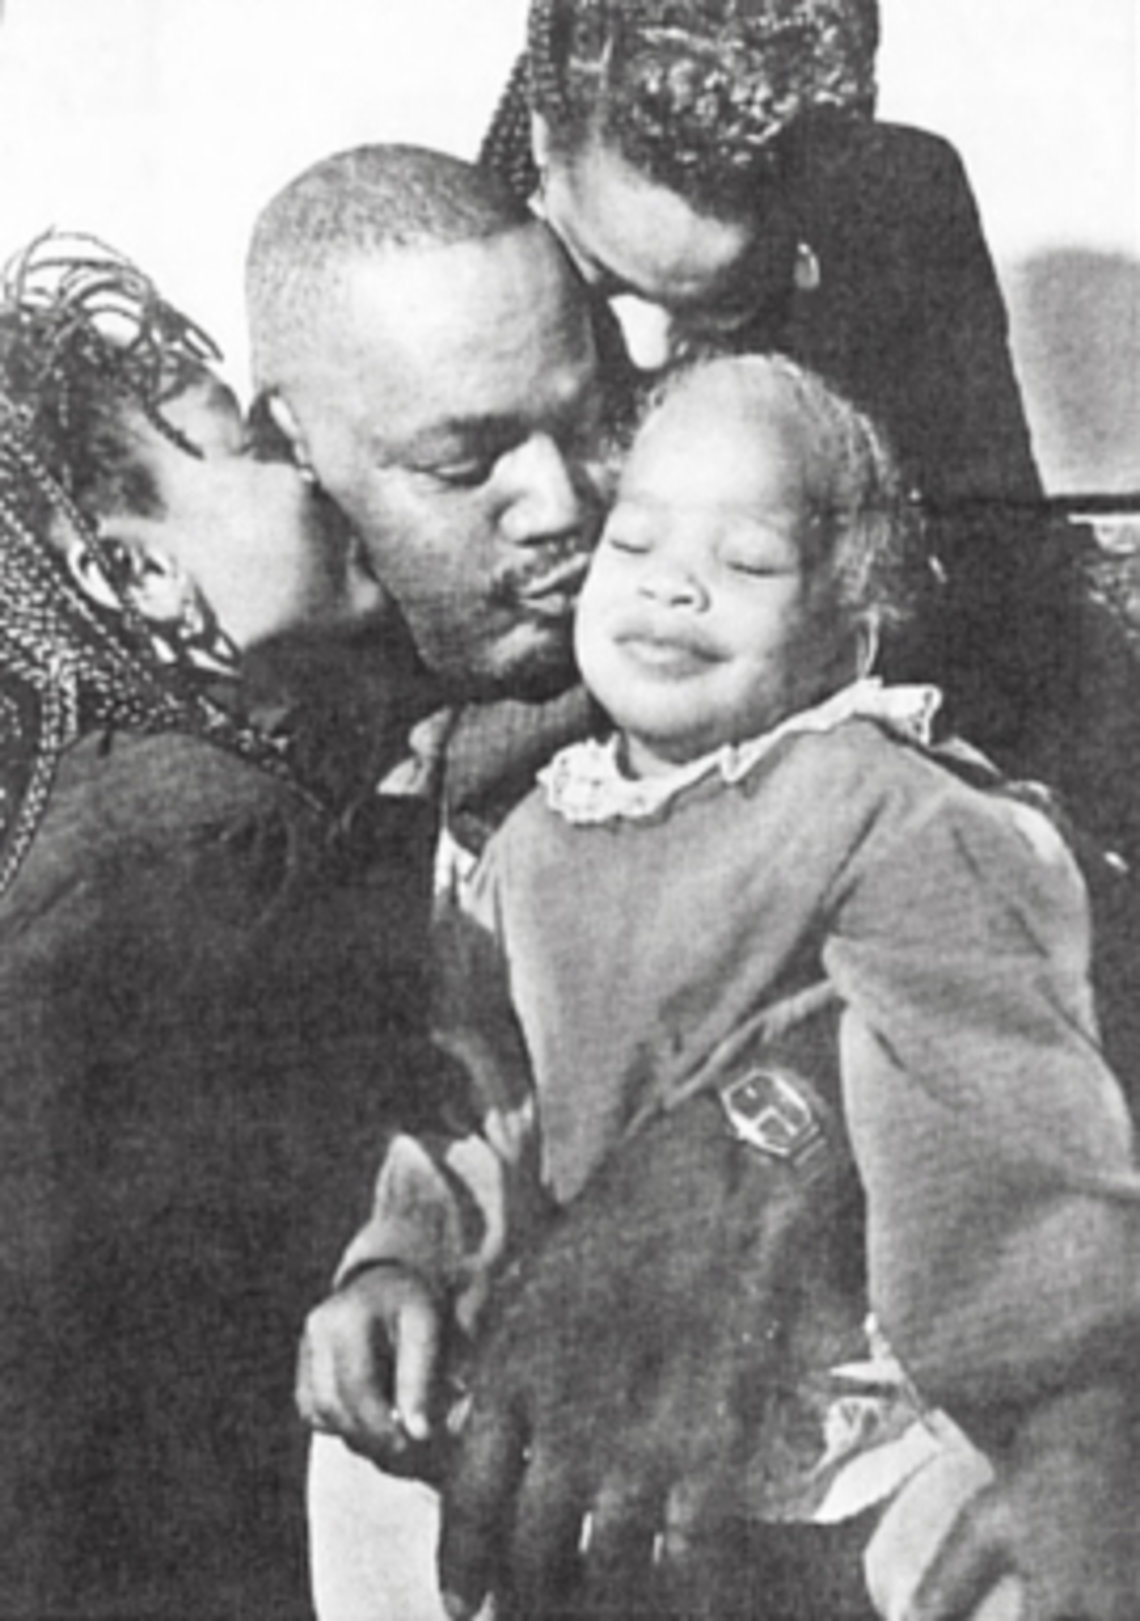 Phillip Chance embraces his family in a snapshot from the mid-1990s.